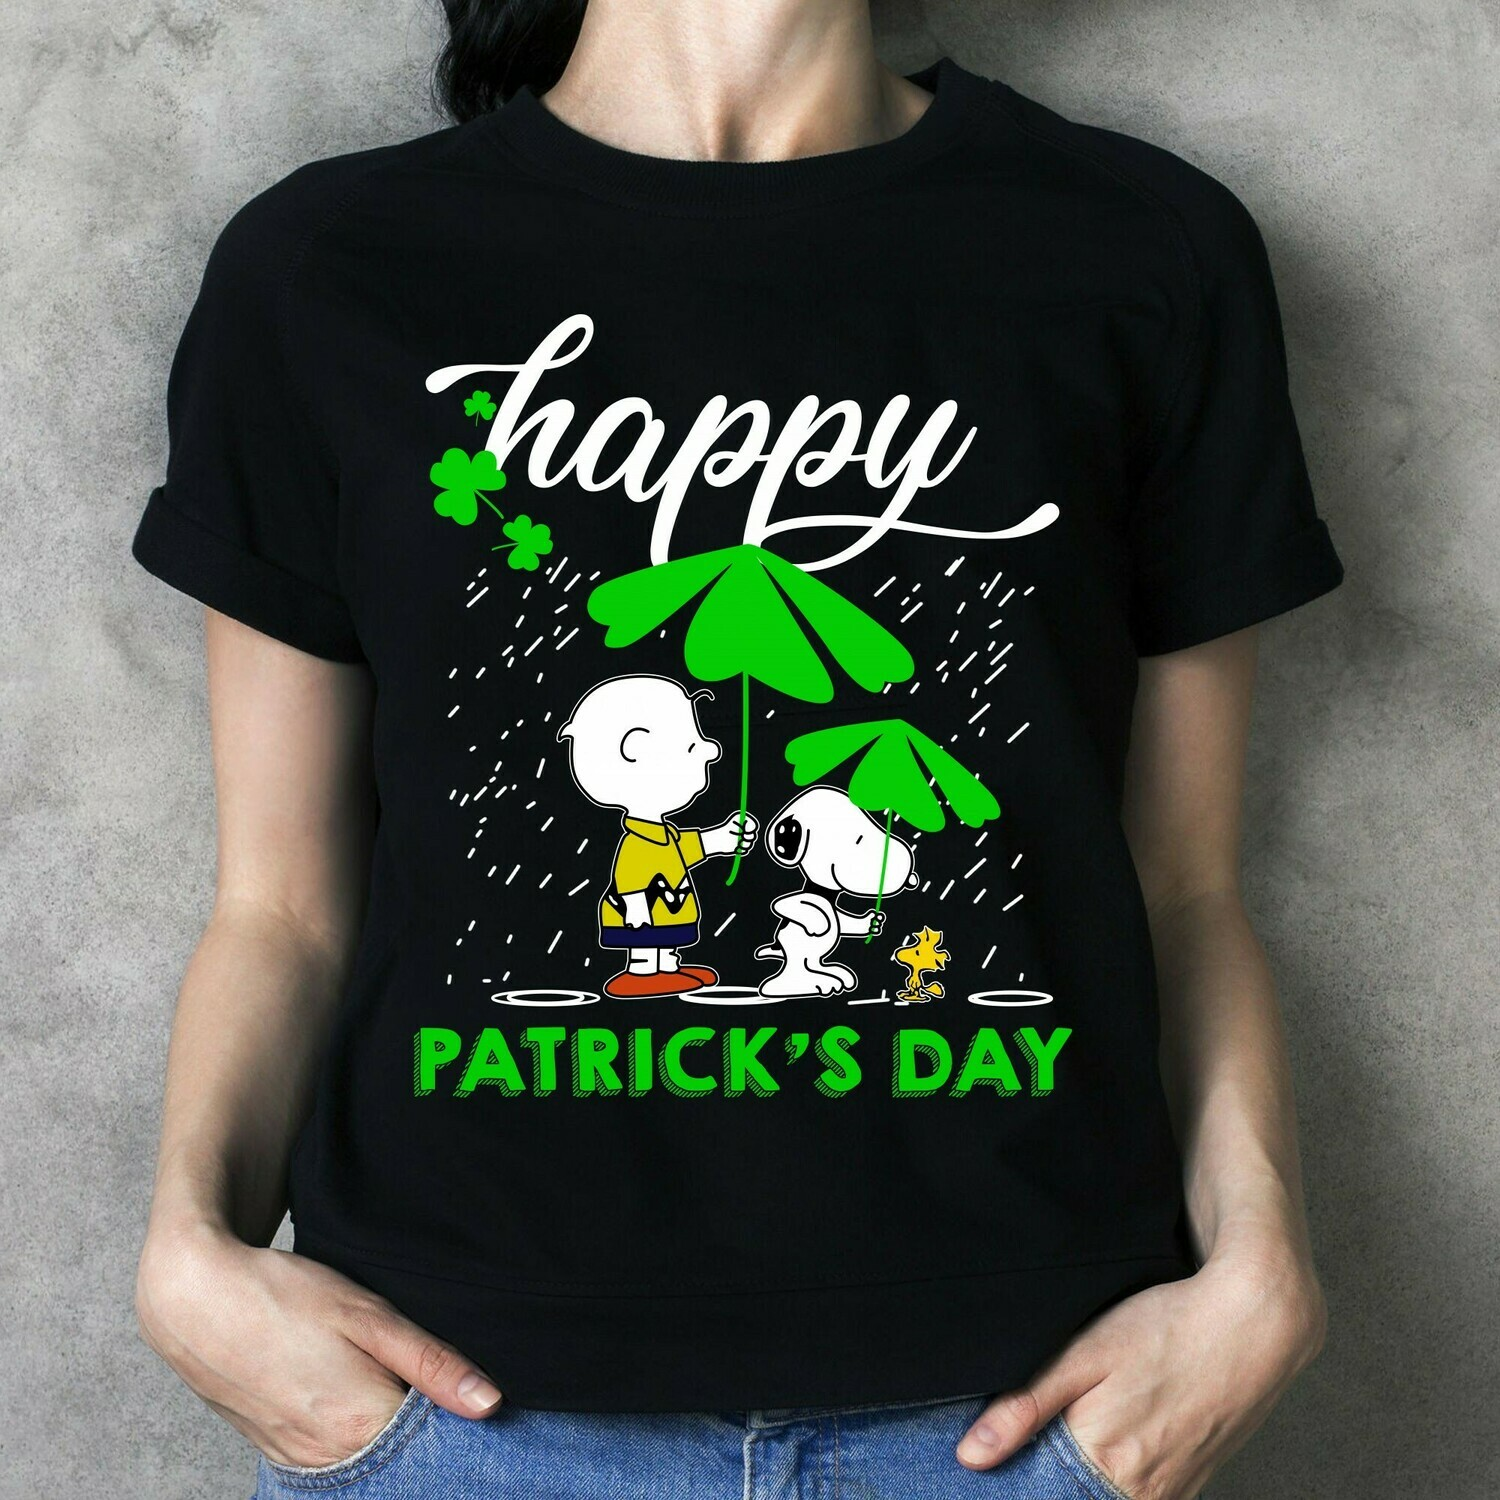 The Peanuts Movie Happy St. Patrick's Day Snoopy,Woodstock,Charlie Brown with Shamrock Four Leaf Clover  T-Shirt Hoodie Sweatshirt Sweater Tee Kids Youth Gifts Jolly Family Gifts